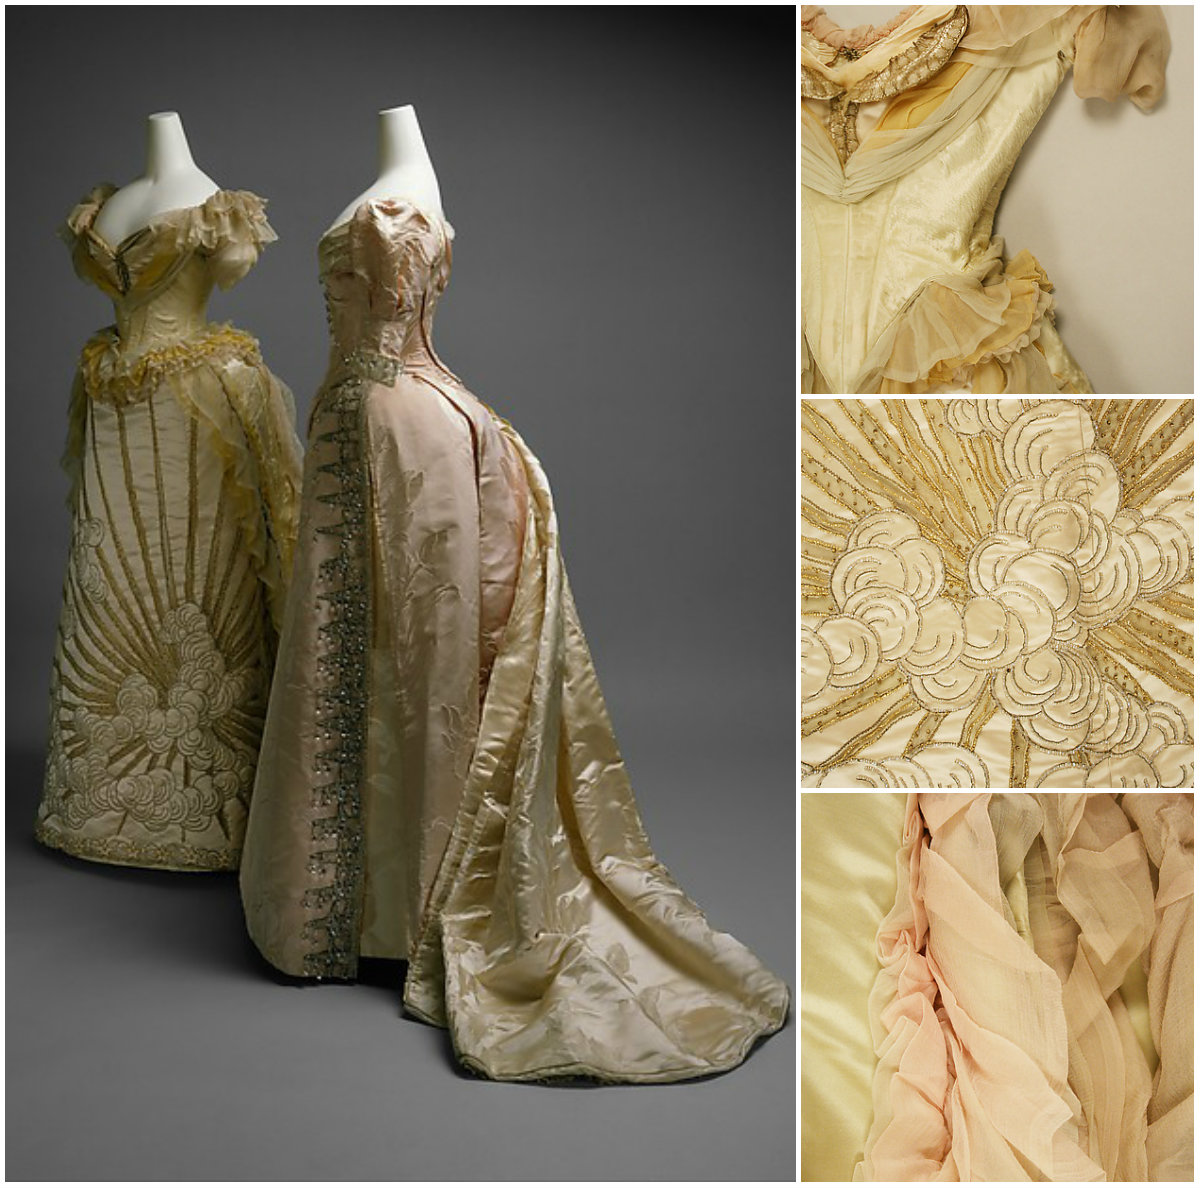 1887. Ball Gown. Silk, glass, metallic thread. metmuseum